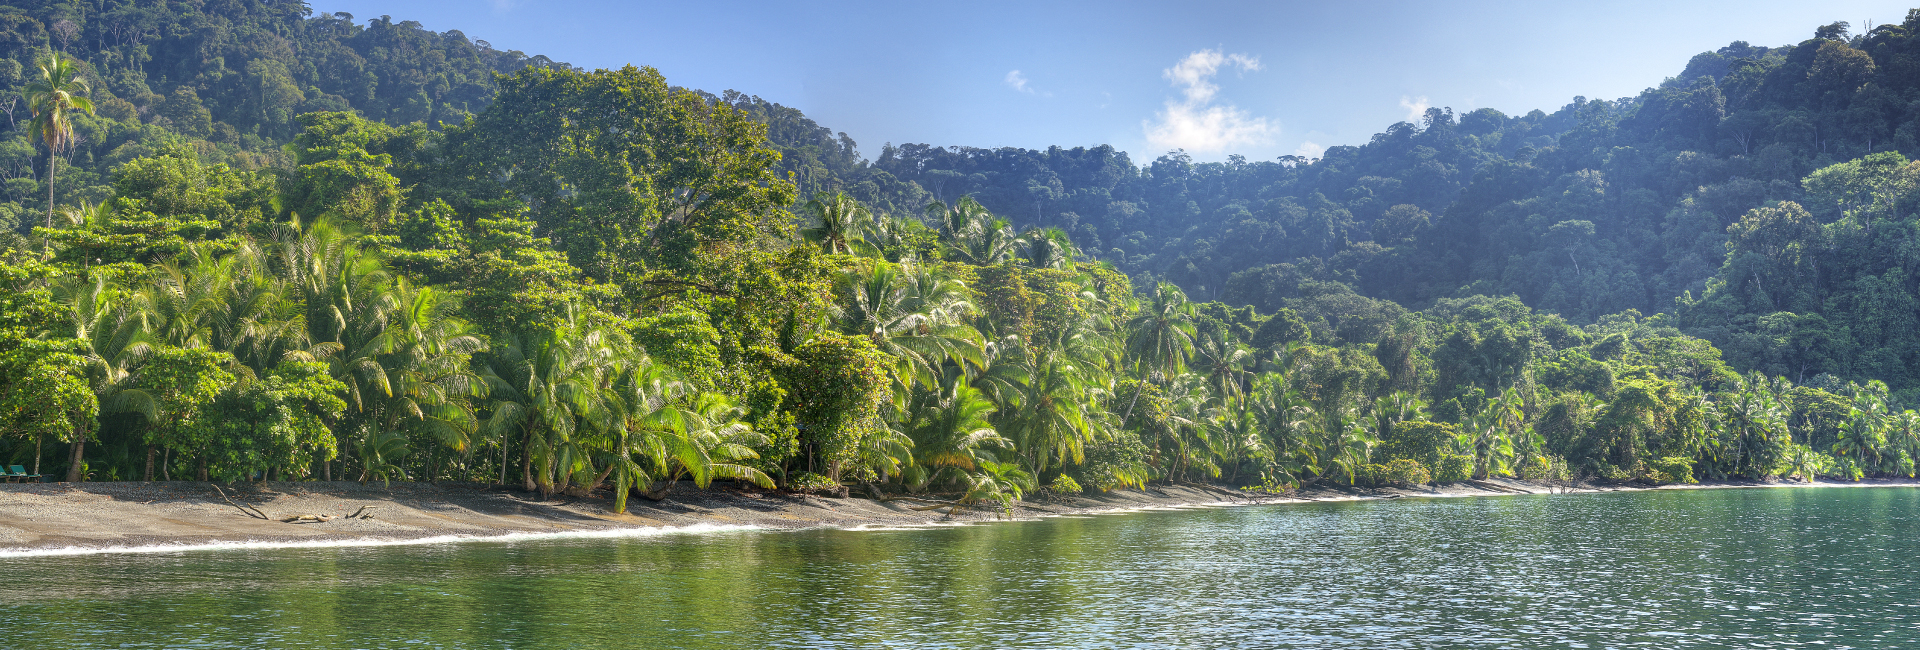 Inmerse into the nature in Costa Rica